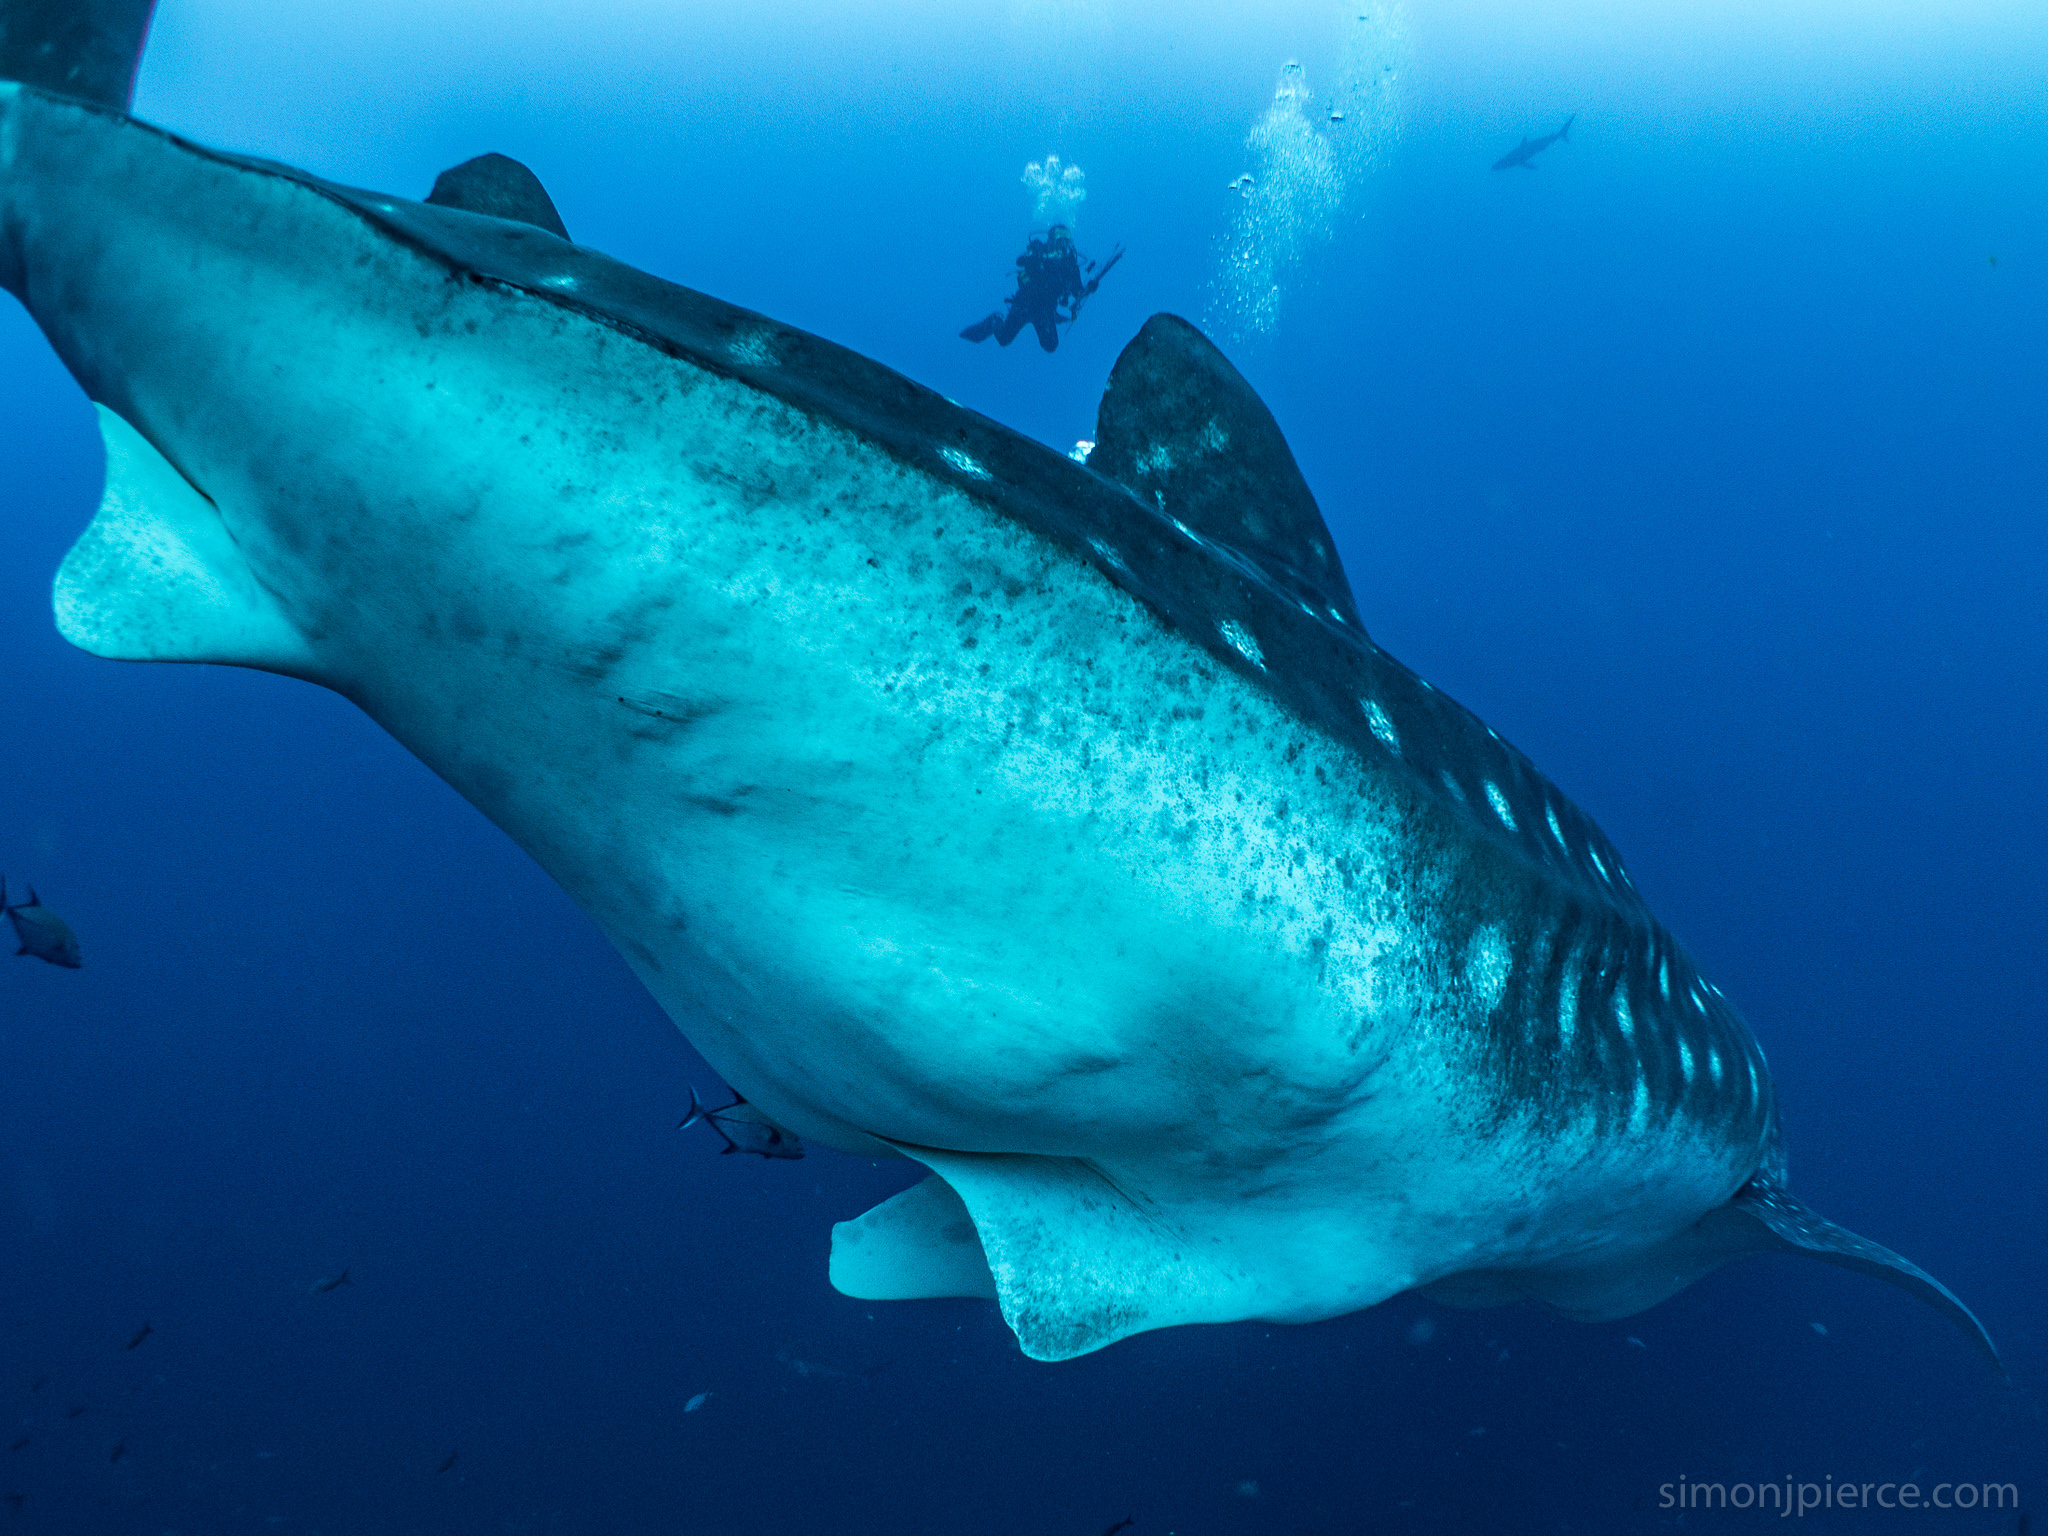 pregnant whale shark in gal by simon pierce darwin island in the galapagos is one of the few places in the world where adult